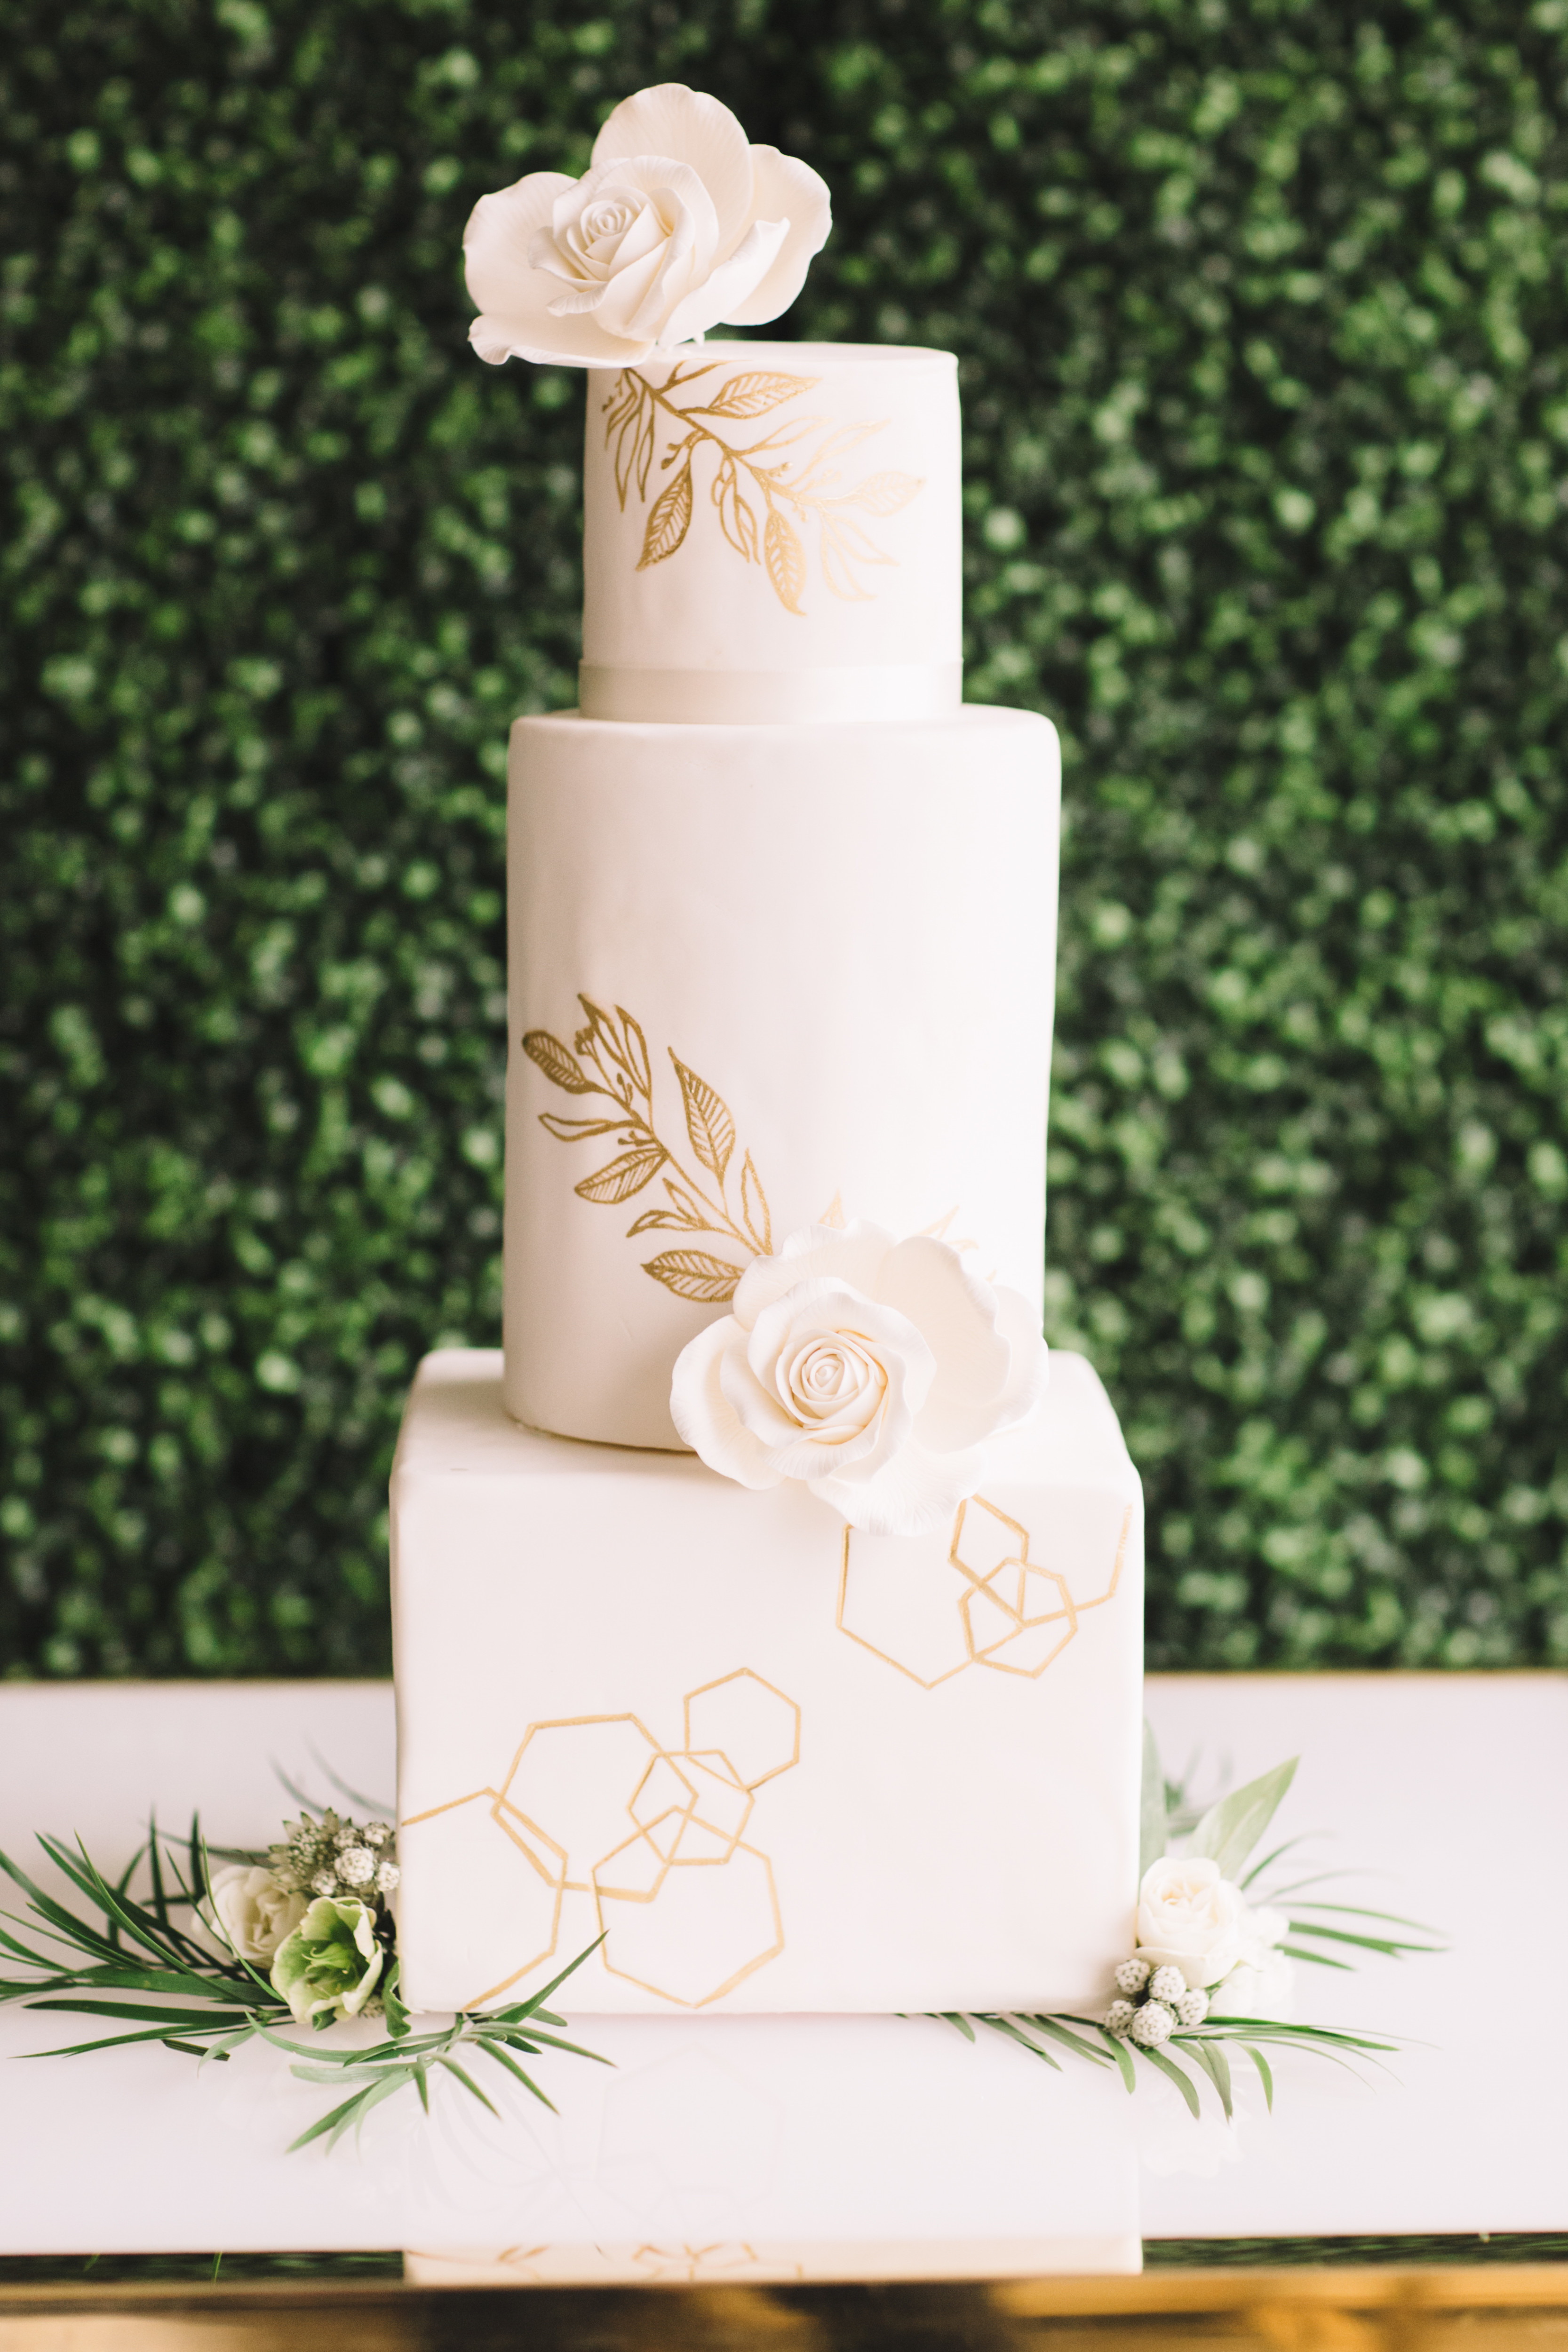 Ivory wedding cake with hand painted gold leaves